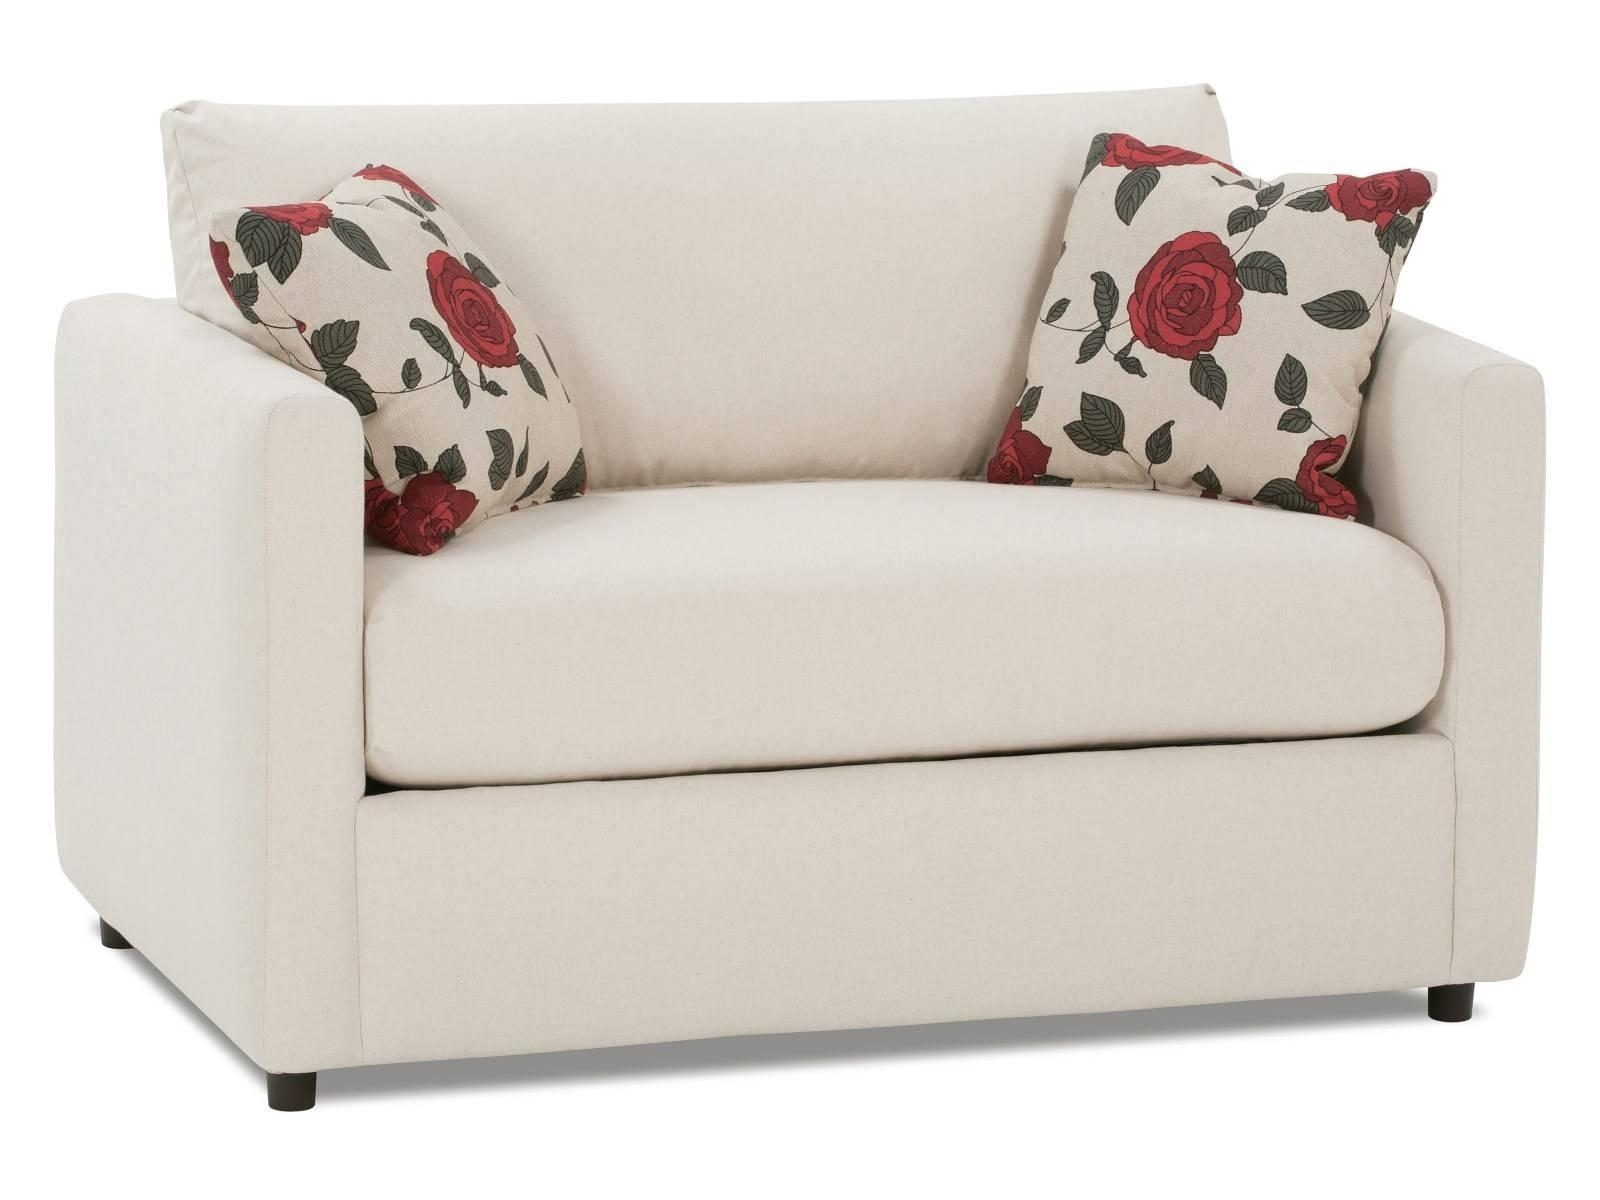 Sofa : Corner Sofas Inspirational Corner Sofas On Credit' Delight Throughout 2X2 Corner Sofas (View 11 of 21)